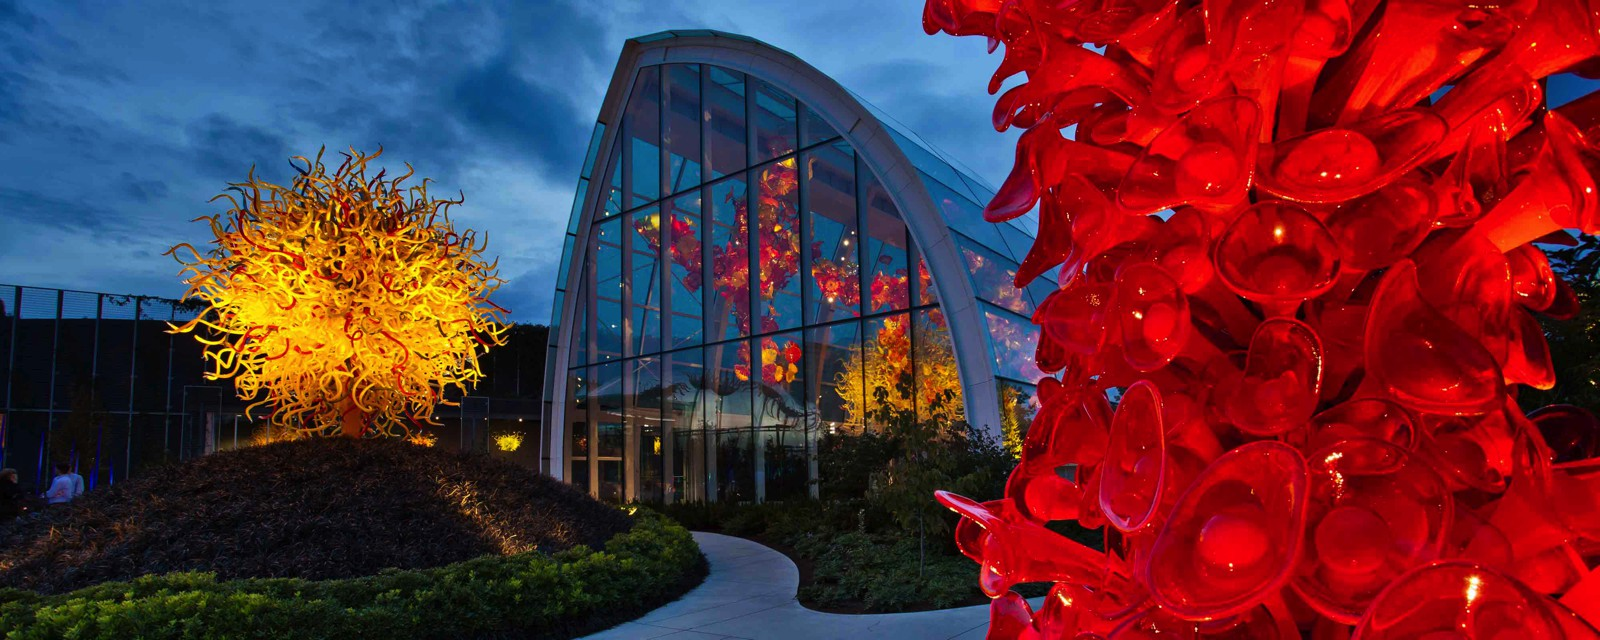 12 Fantastic Sights You Have To See In Seattle, USA (14)